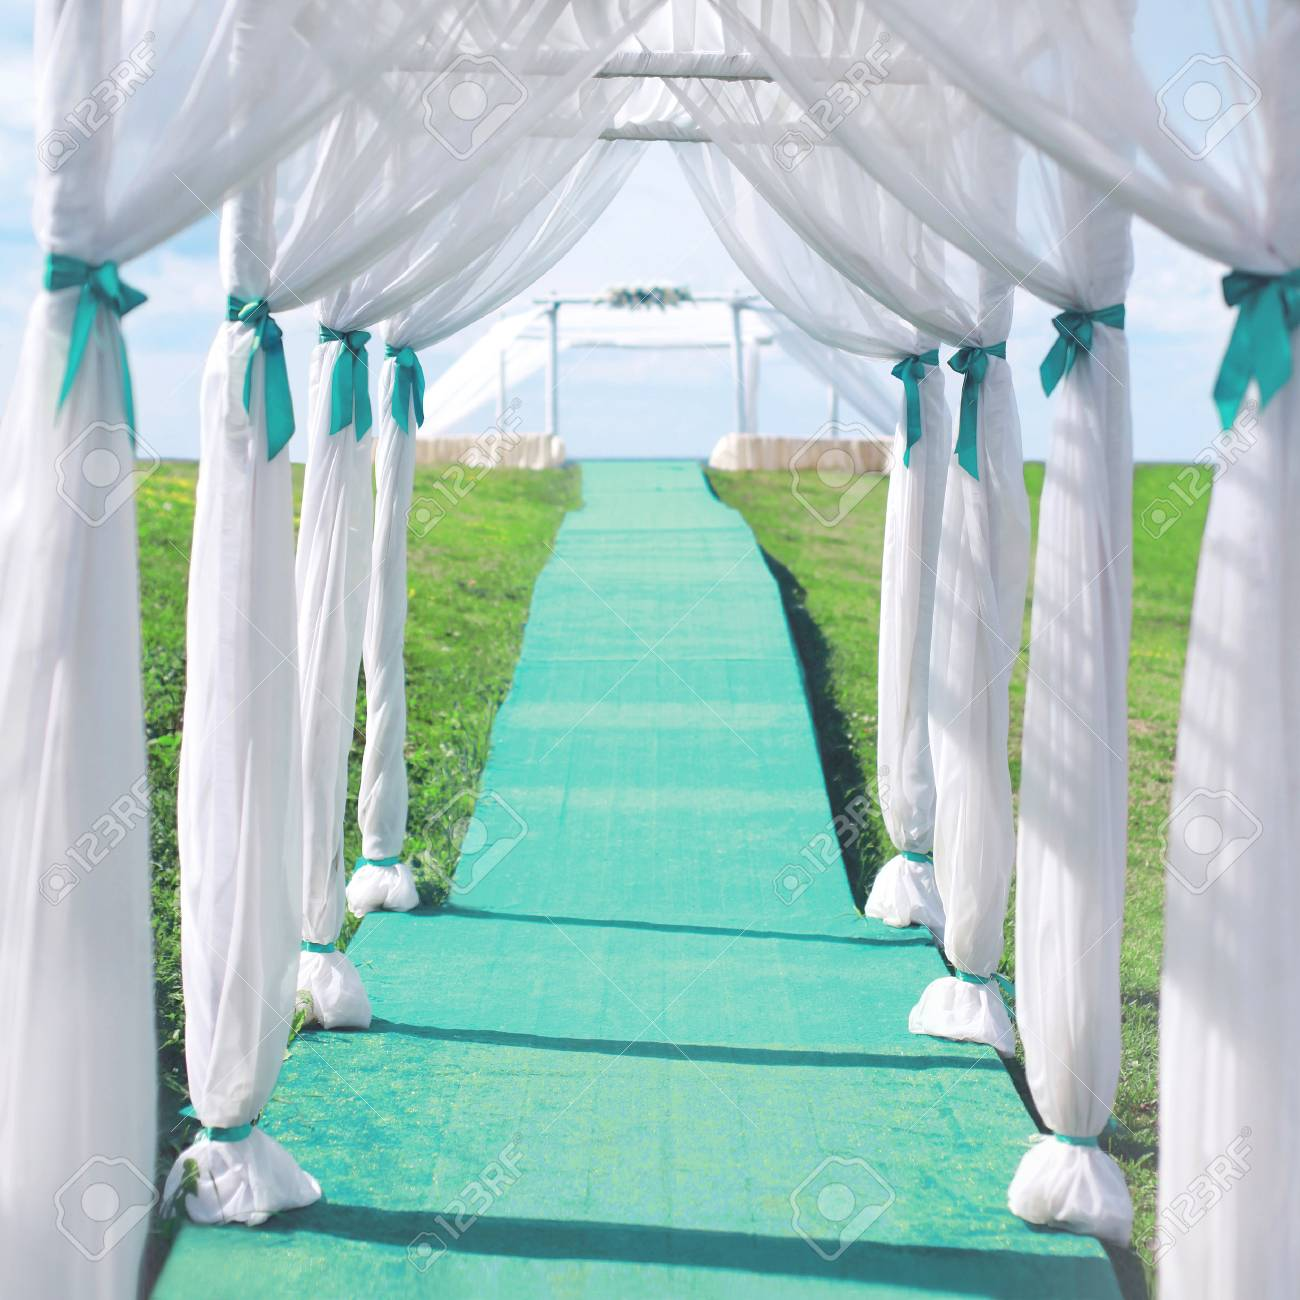 bridal canopy decoration, OFF 74%,Buy!